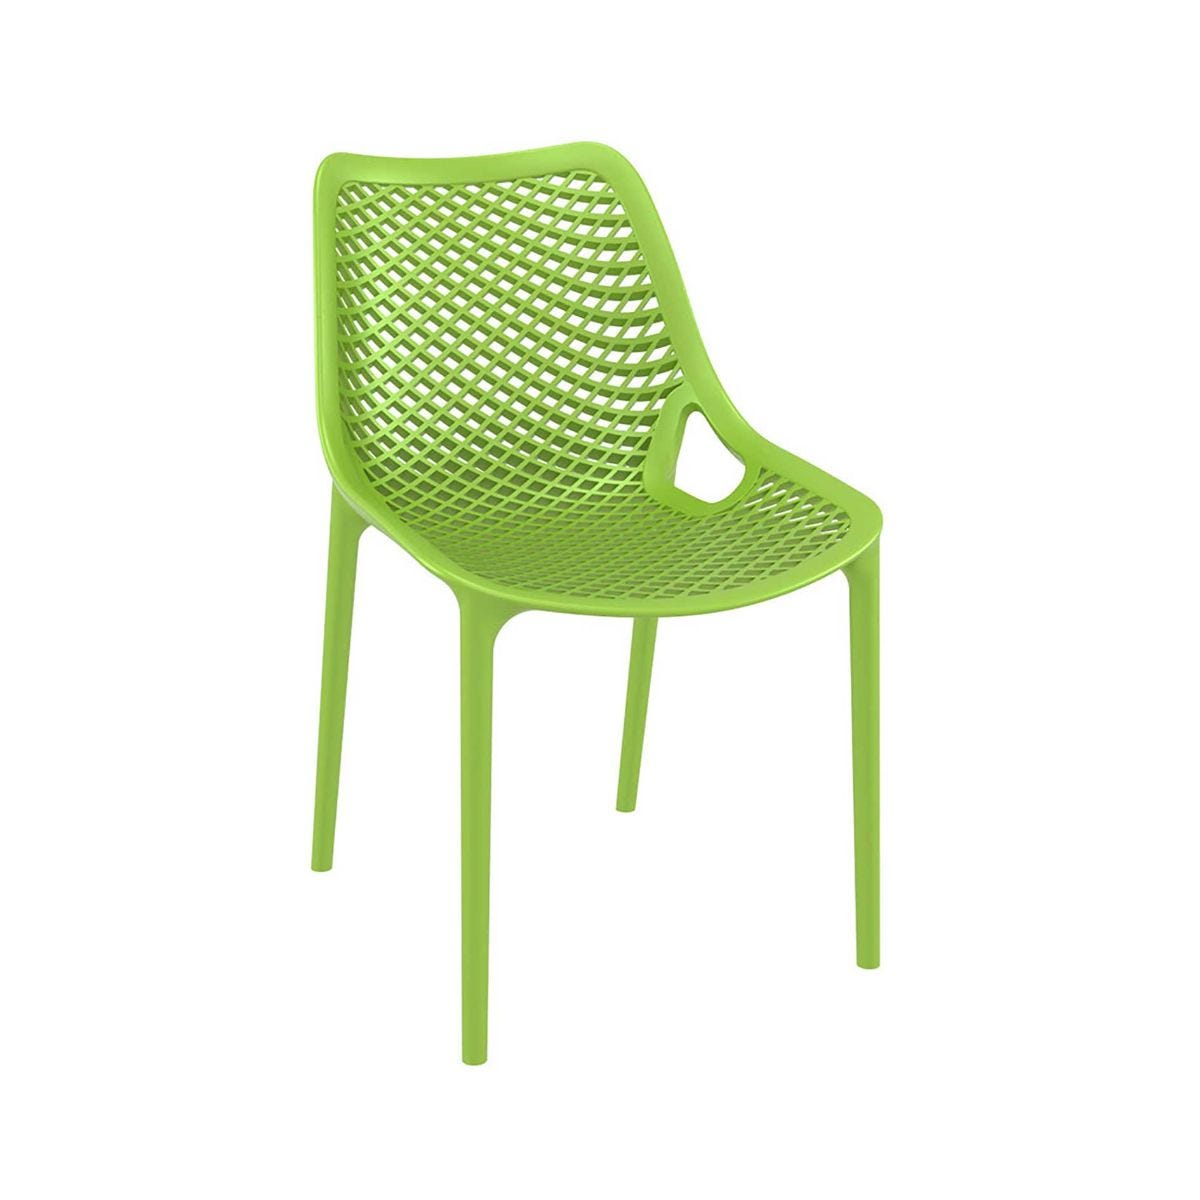 Spring Outdoor Side Chair, Tropical Green